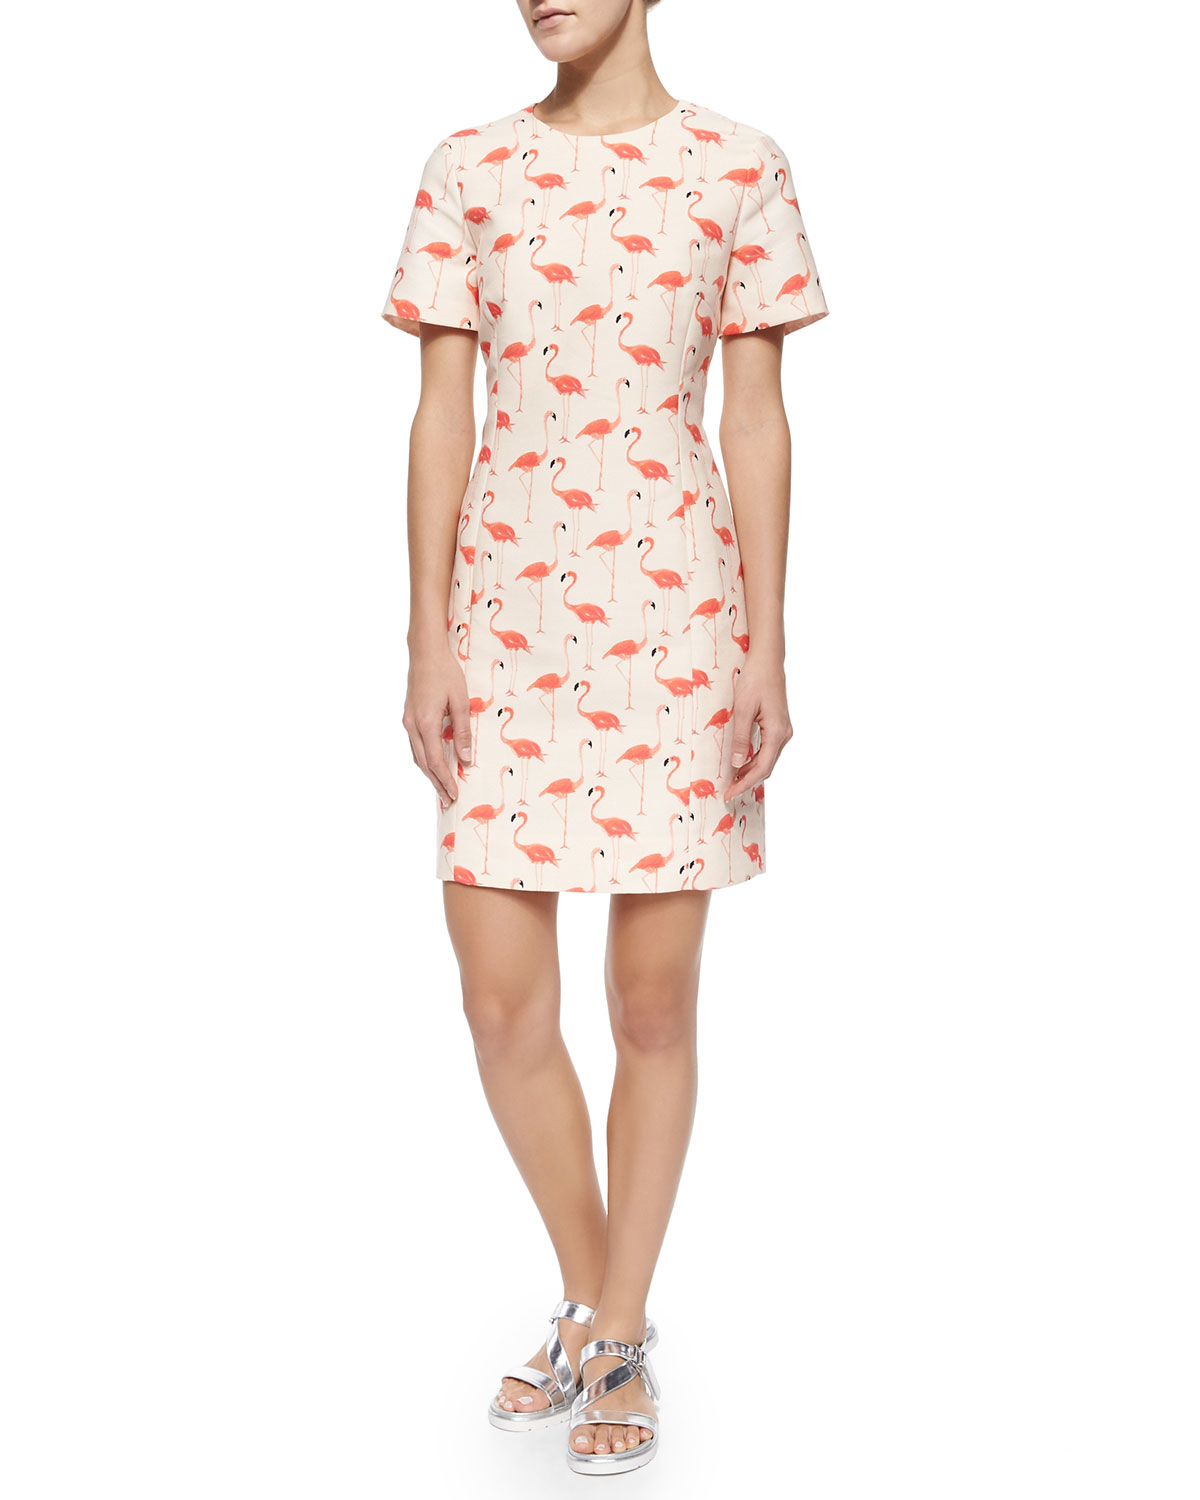 Kate spade new york Short-sleeve Flamingo-print Sheath ...